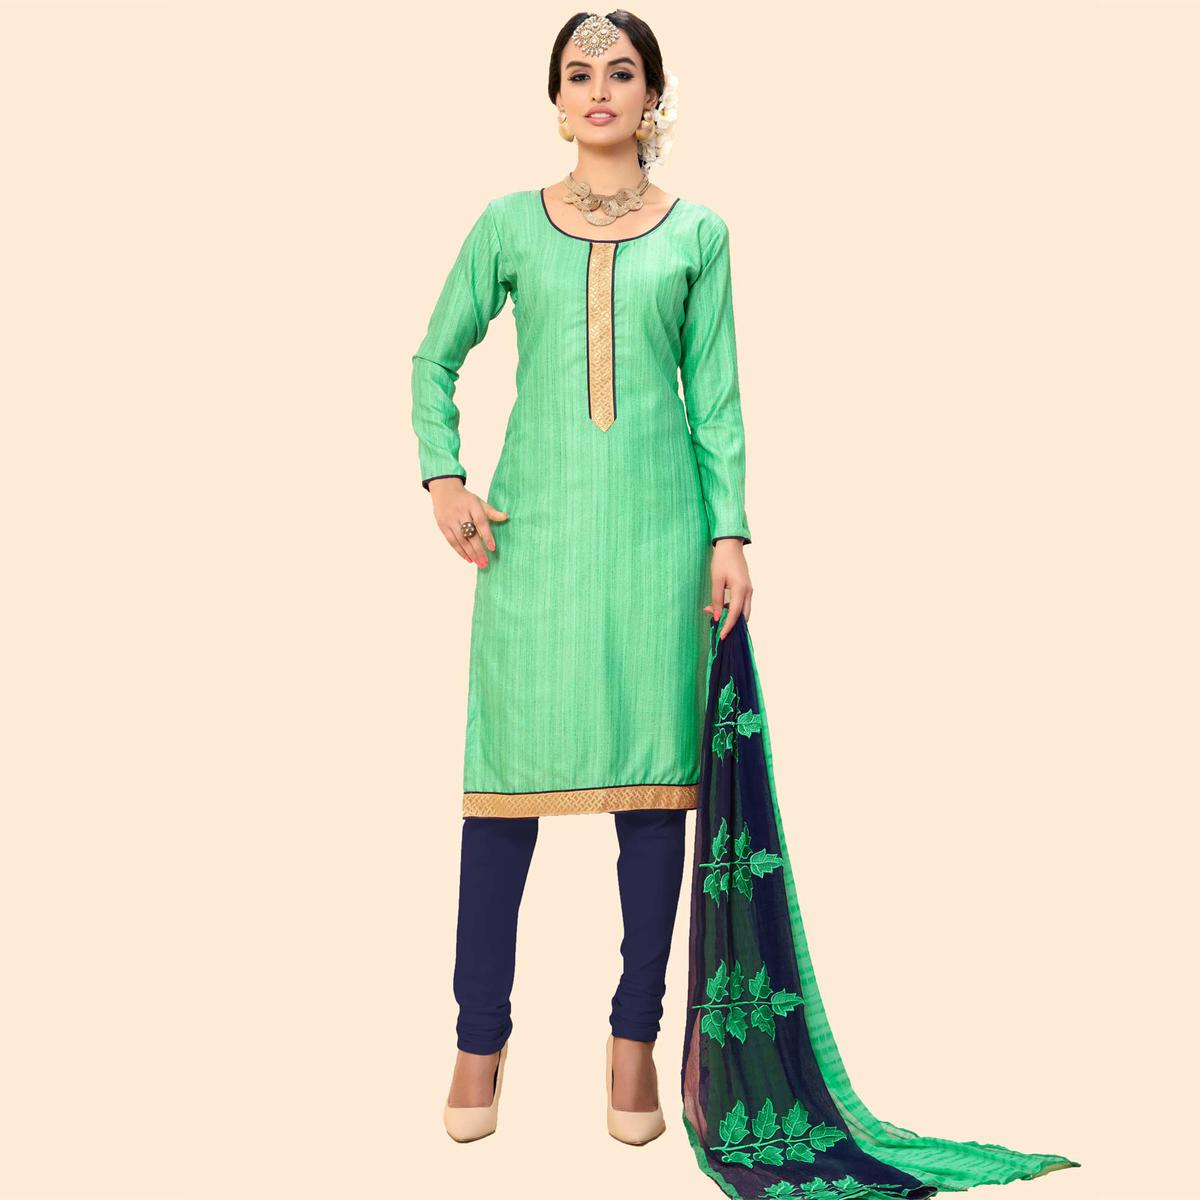 Light Green Chanderi Suit